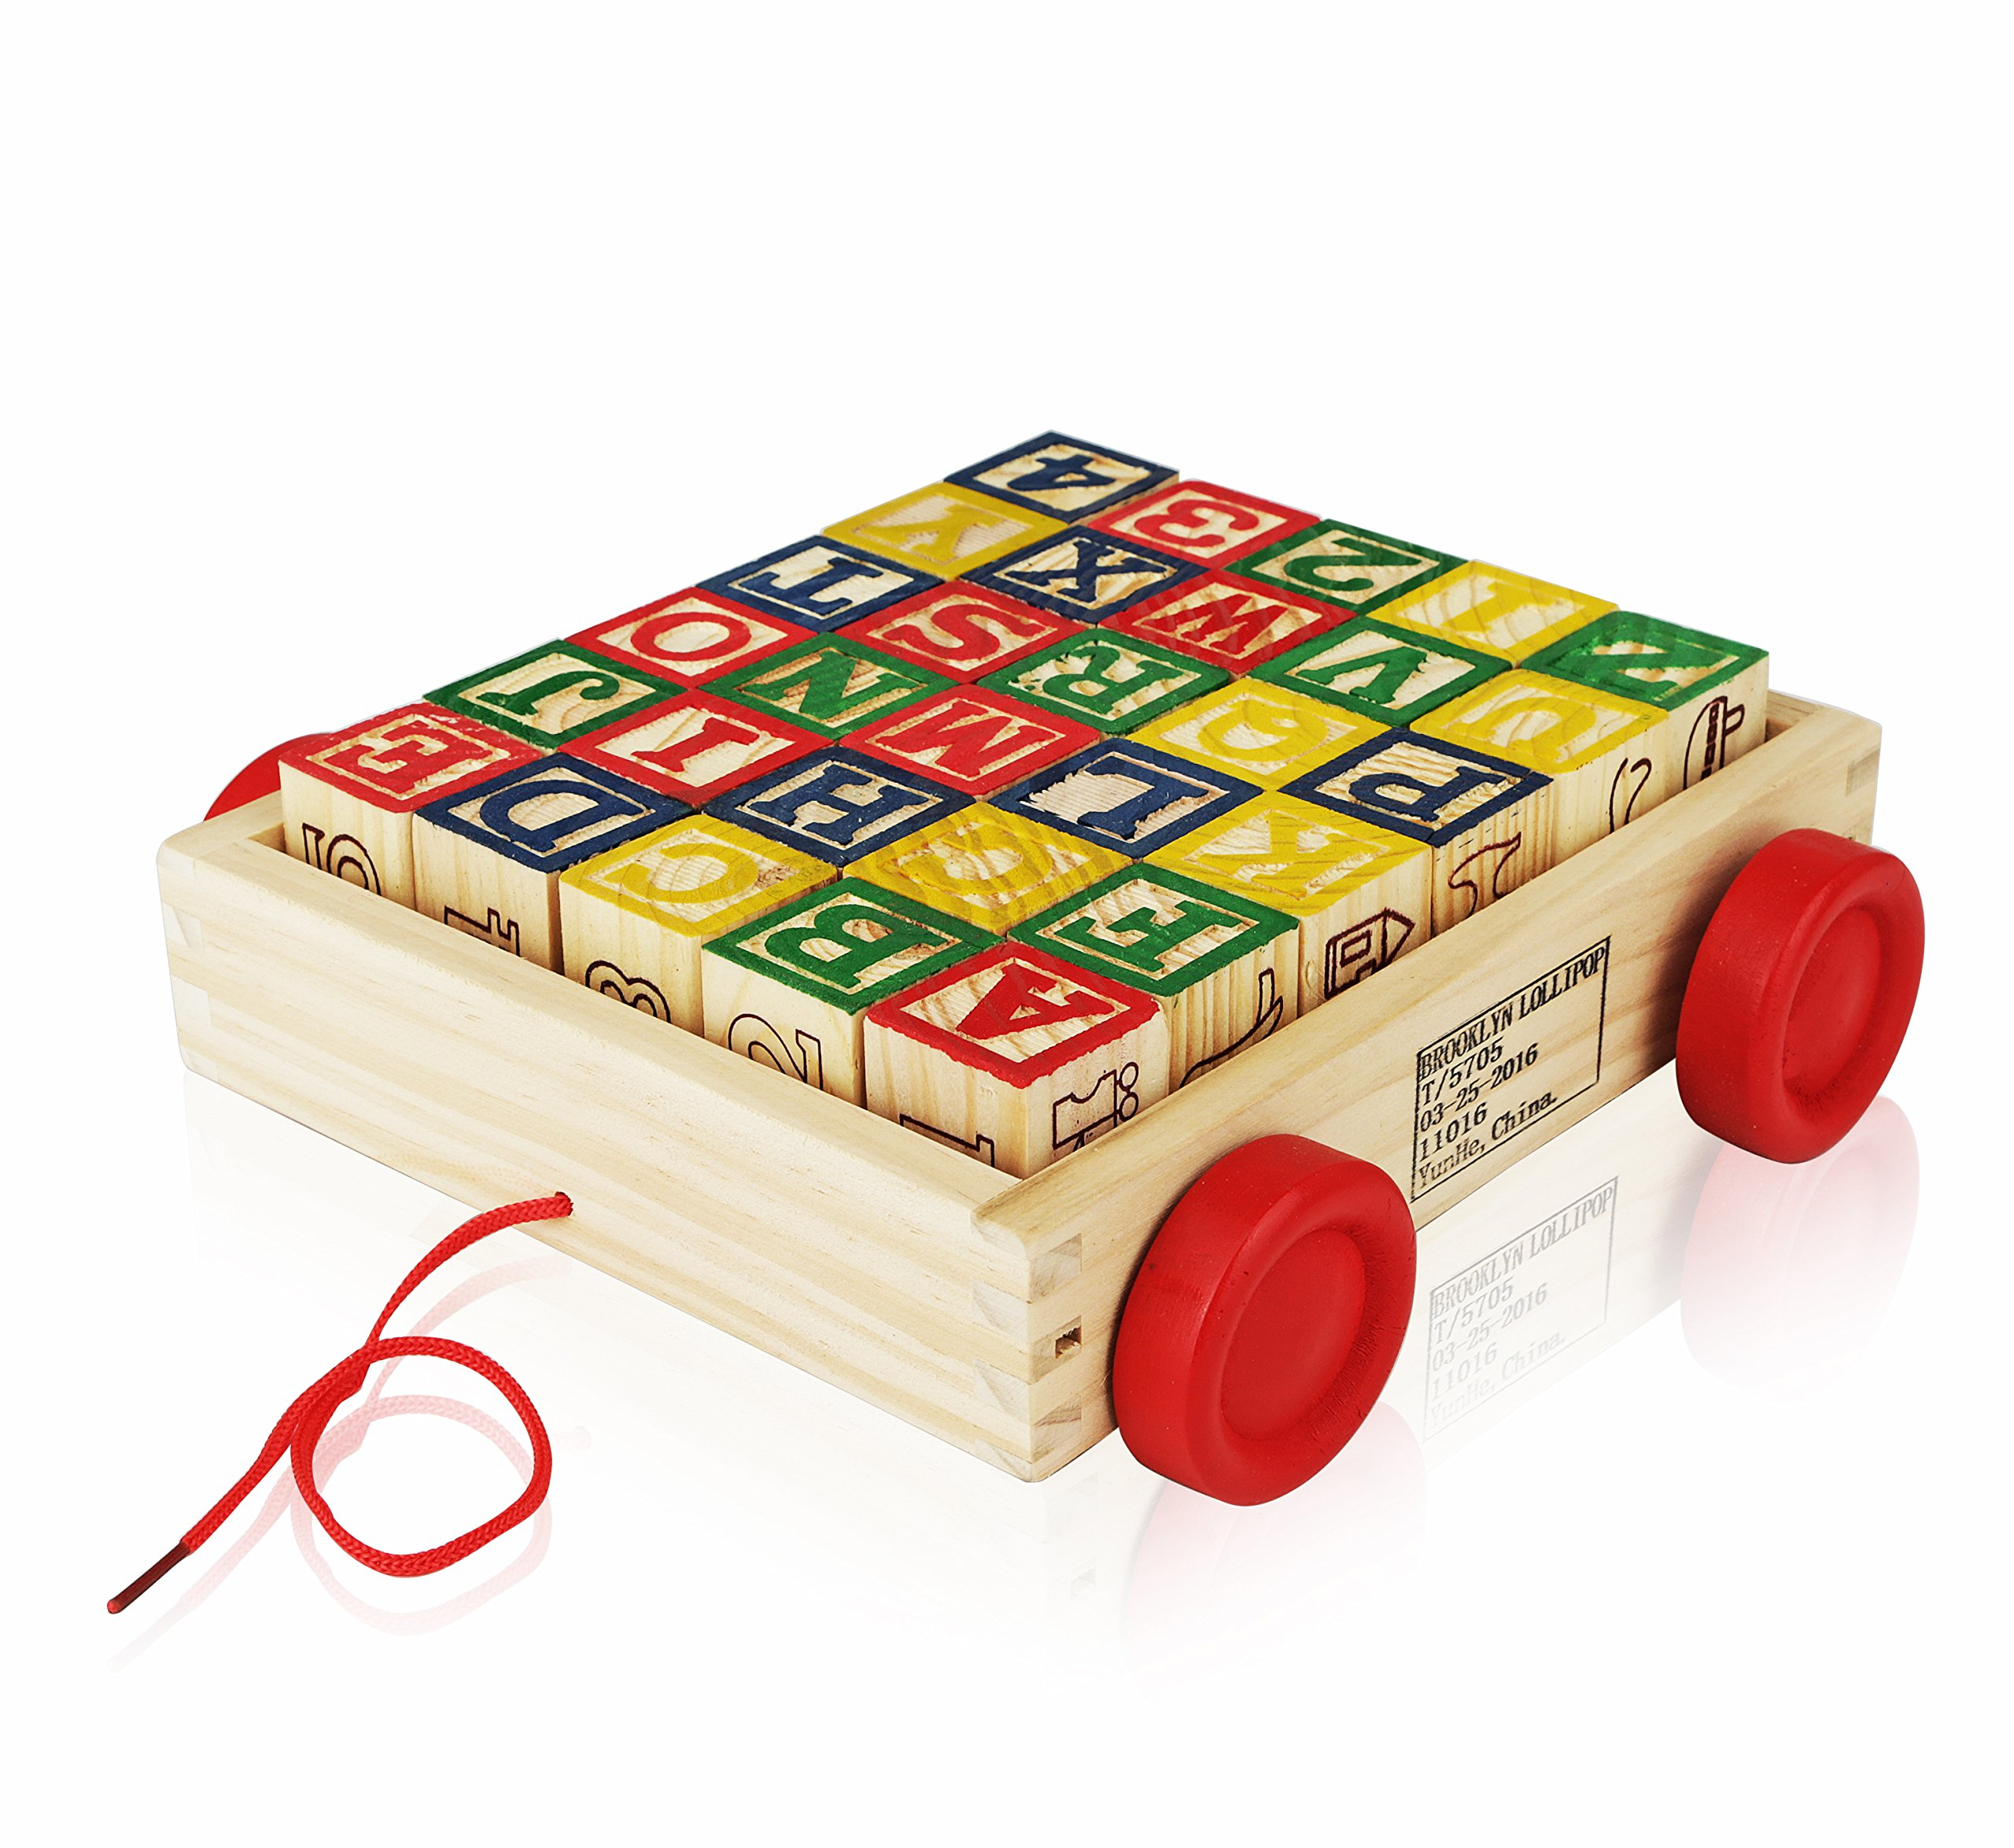 wooden alphabet blocks best wagon abc wooden block letters come in a pull wagon for easy storage and movement most entertaining wooden toy for toddlers